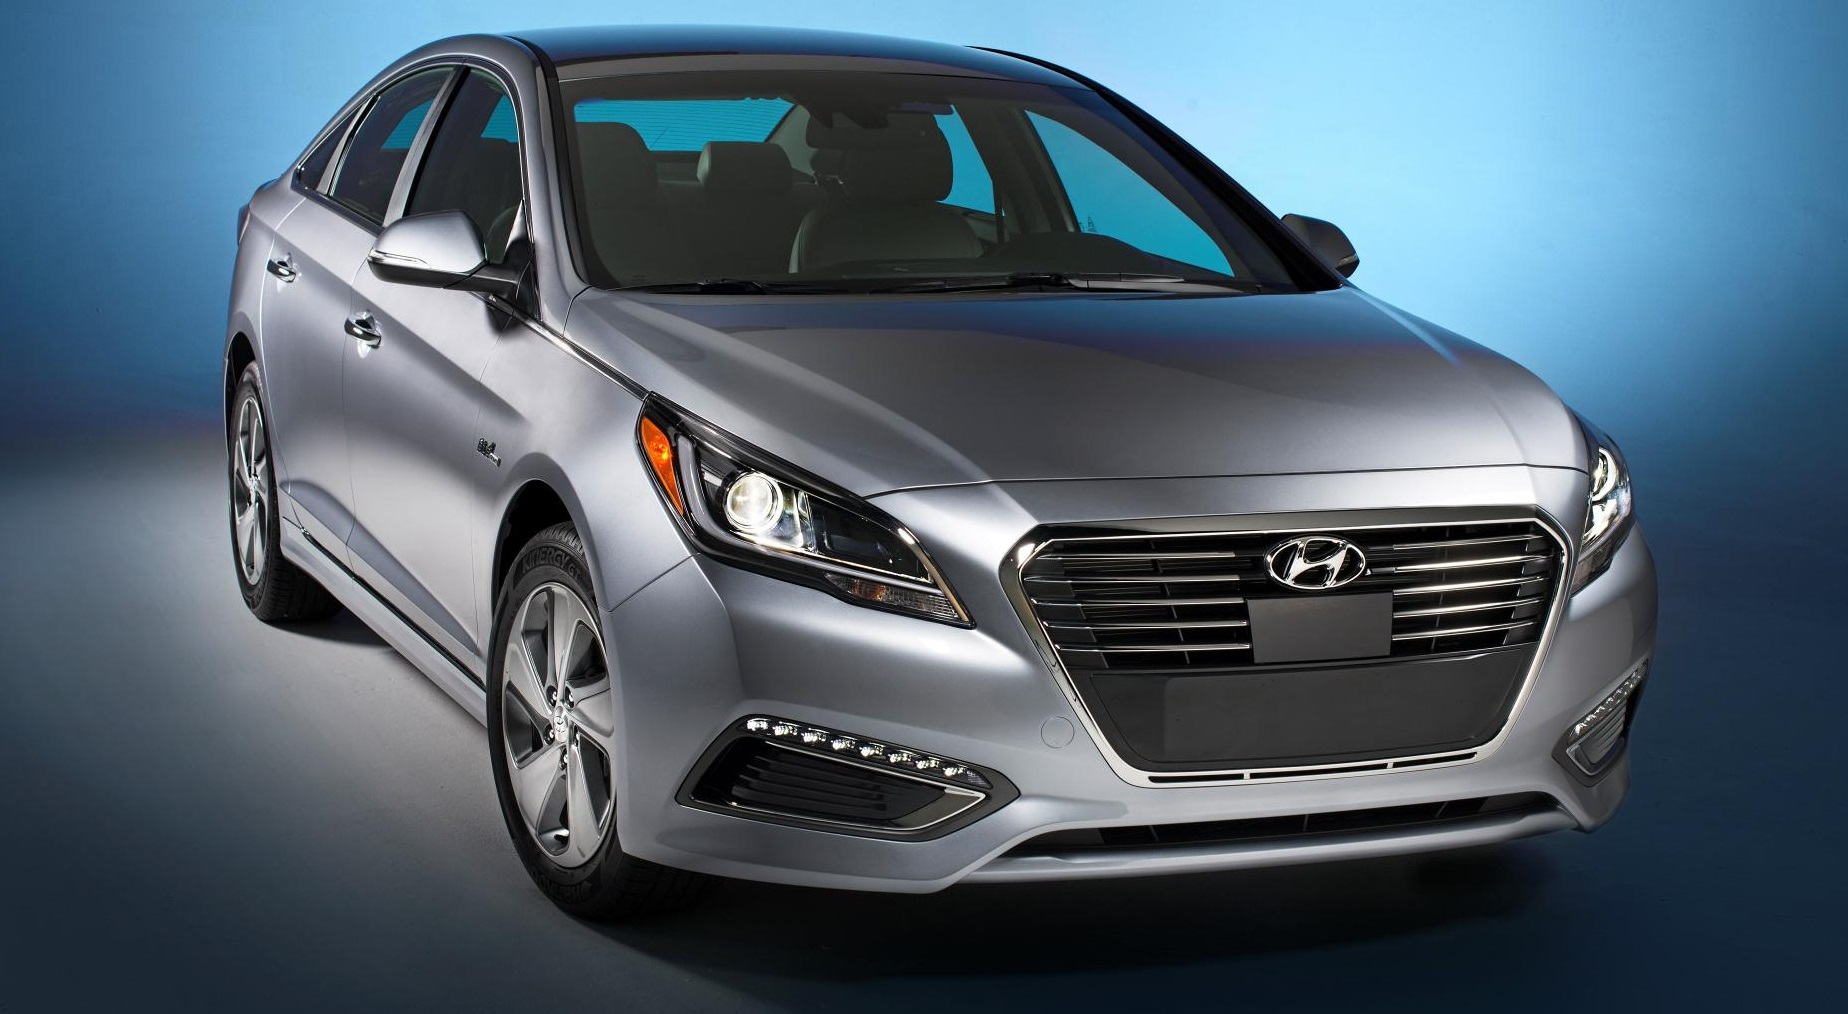 2016 Hyundai Sonata получил «Top Safety Pick +» рейтинг IIHS фото